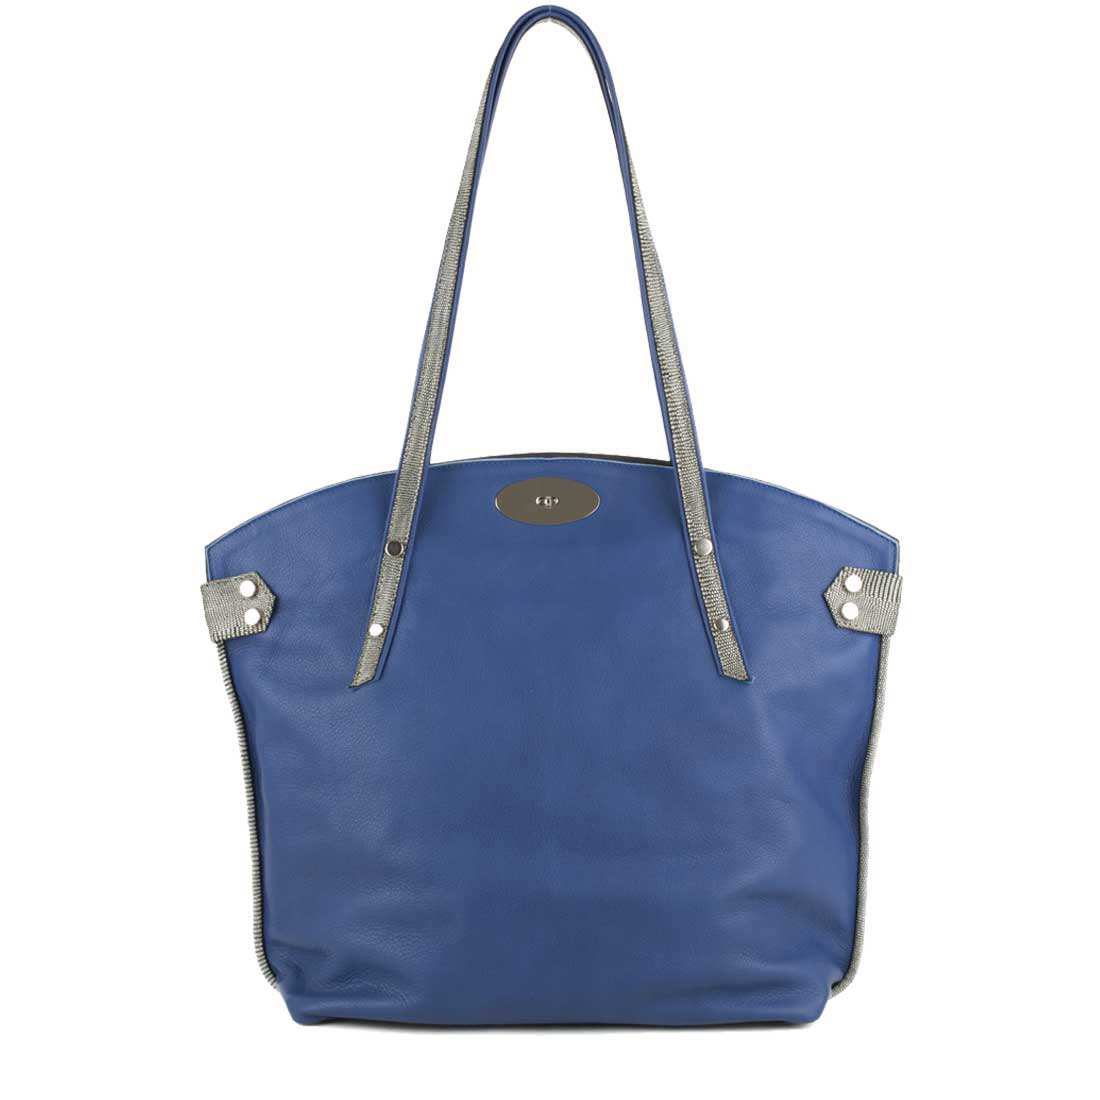 Tamara Blue Leather Tote Bag